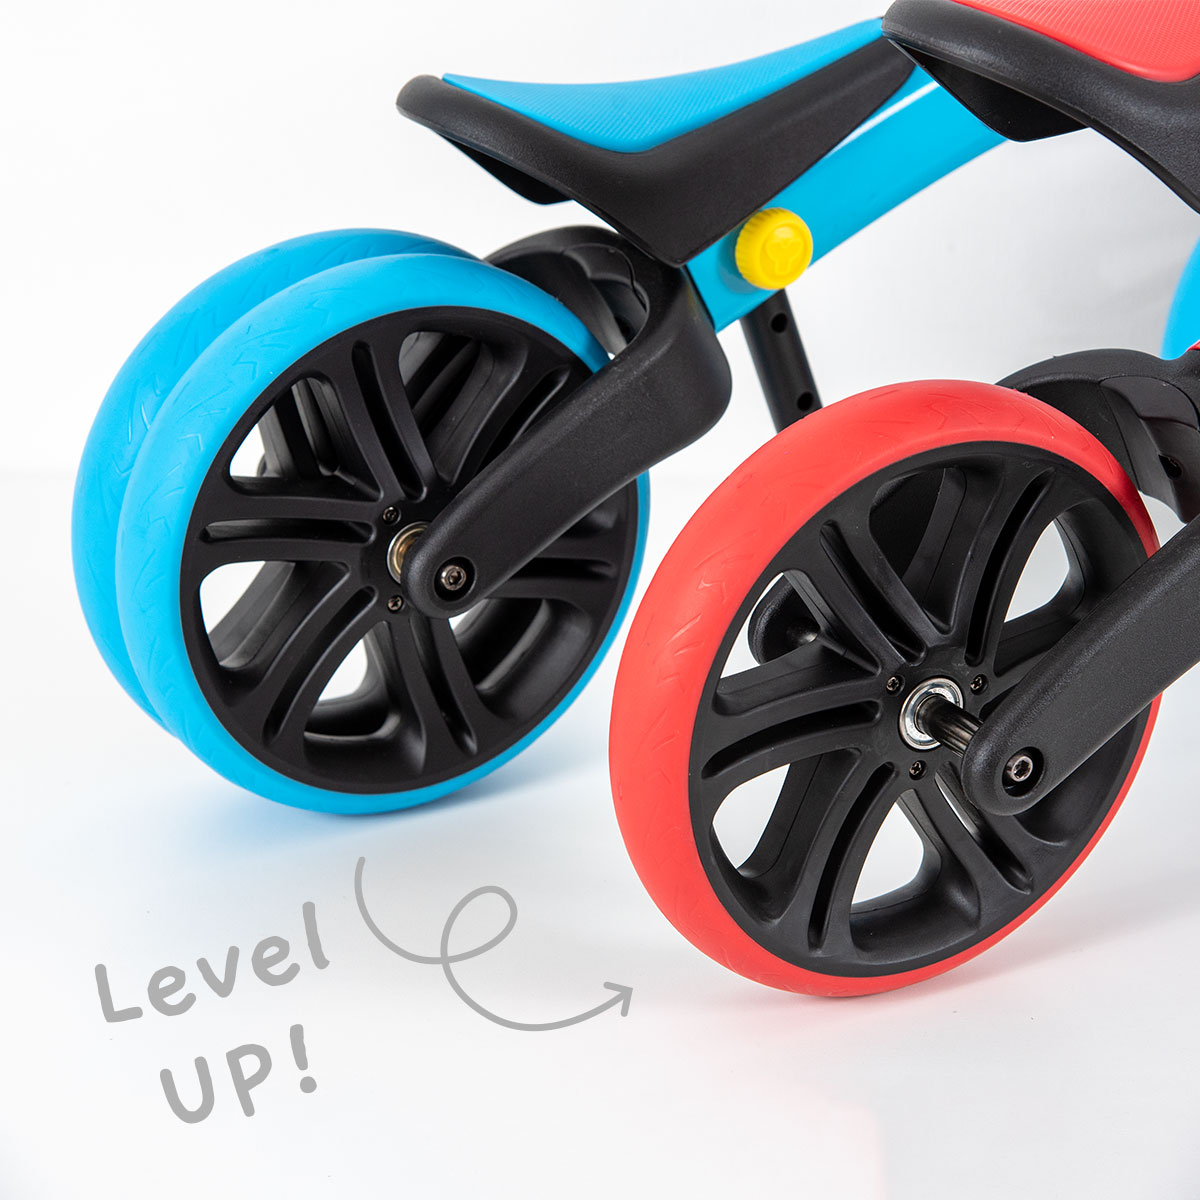 2 stages balance bike